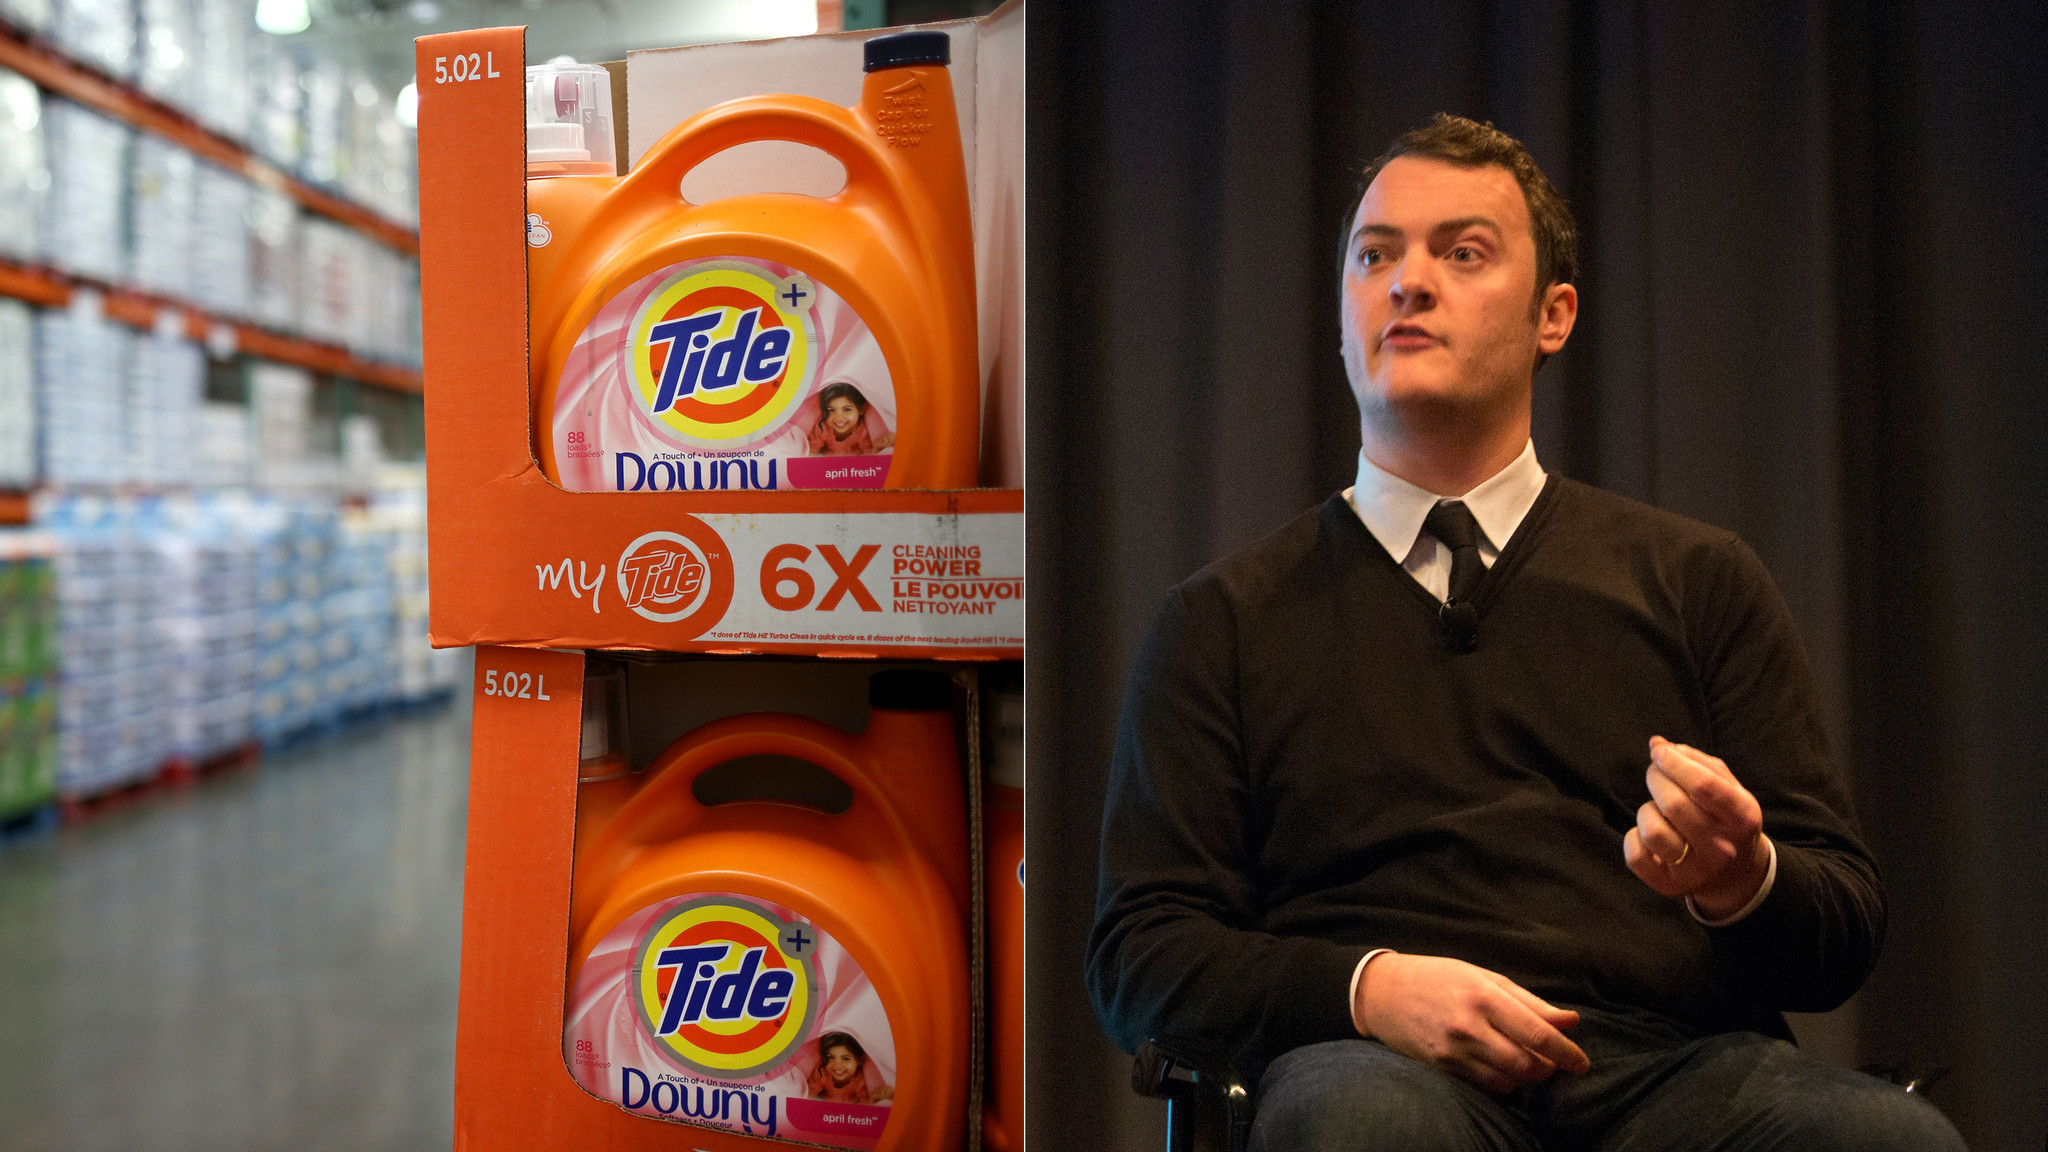 Tide set to take a Spin in Chicago's on-demand laundry market